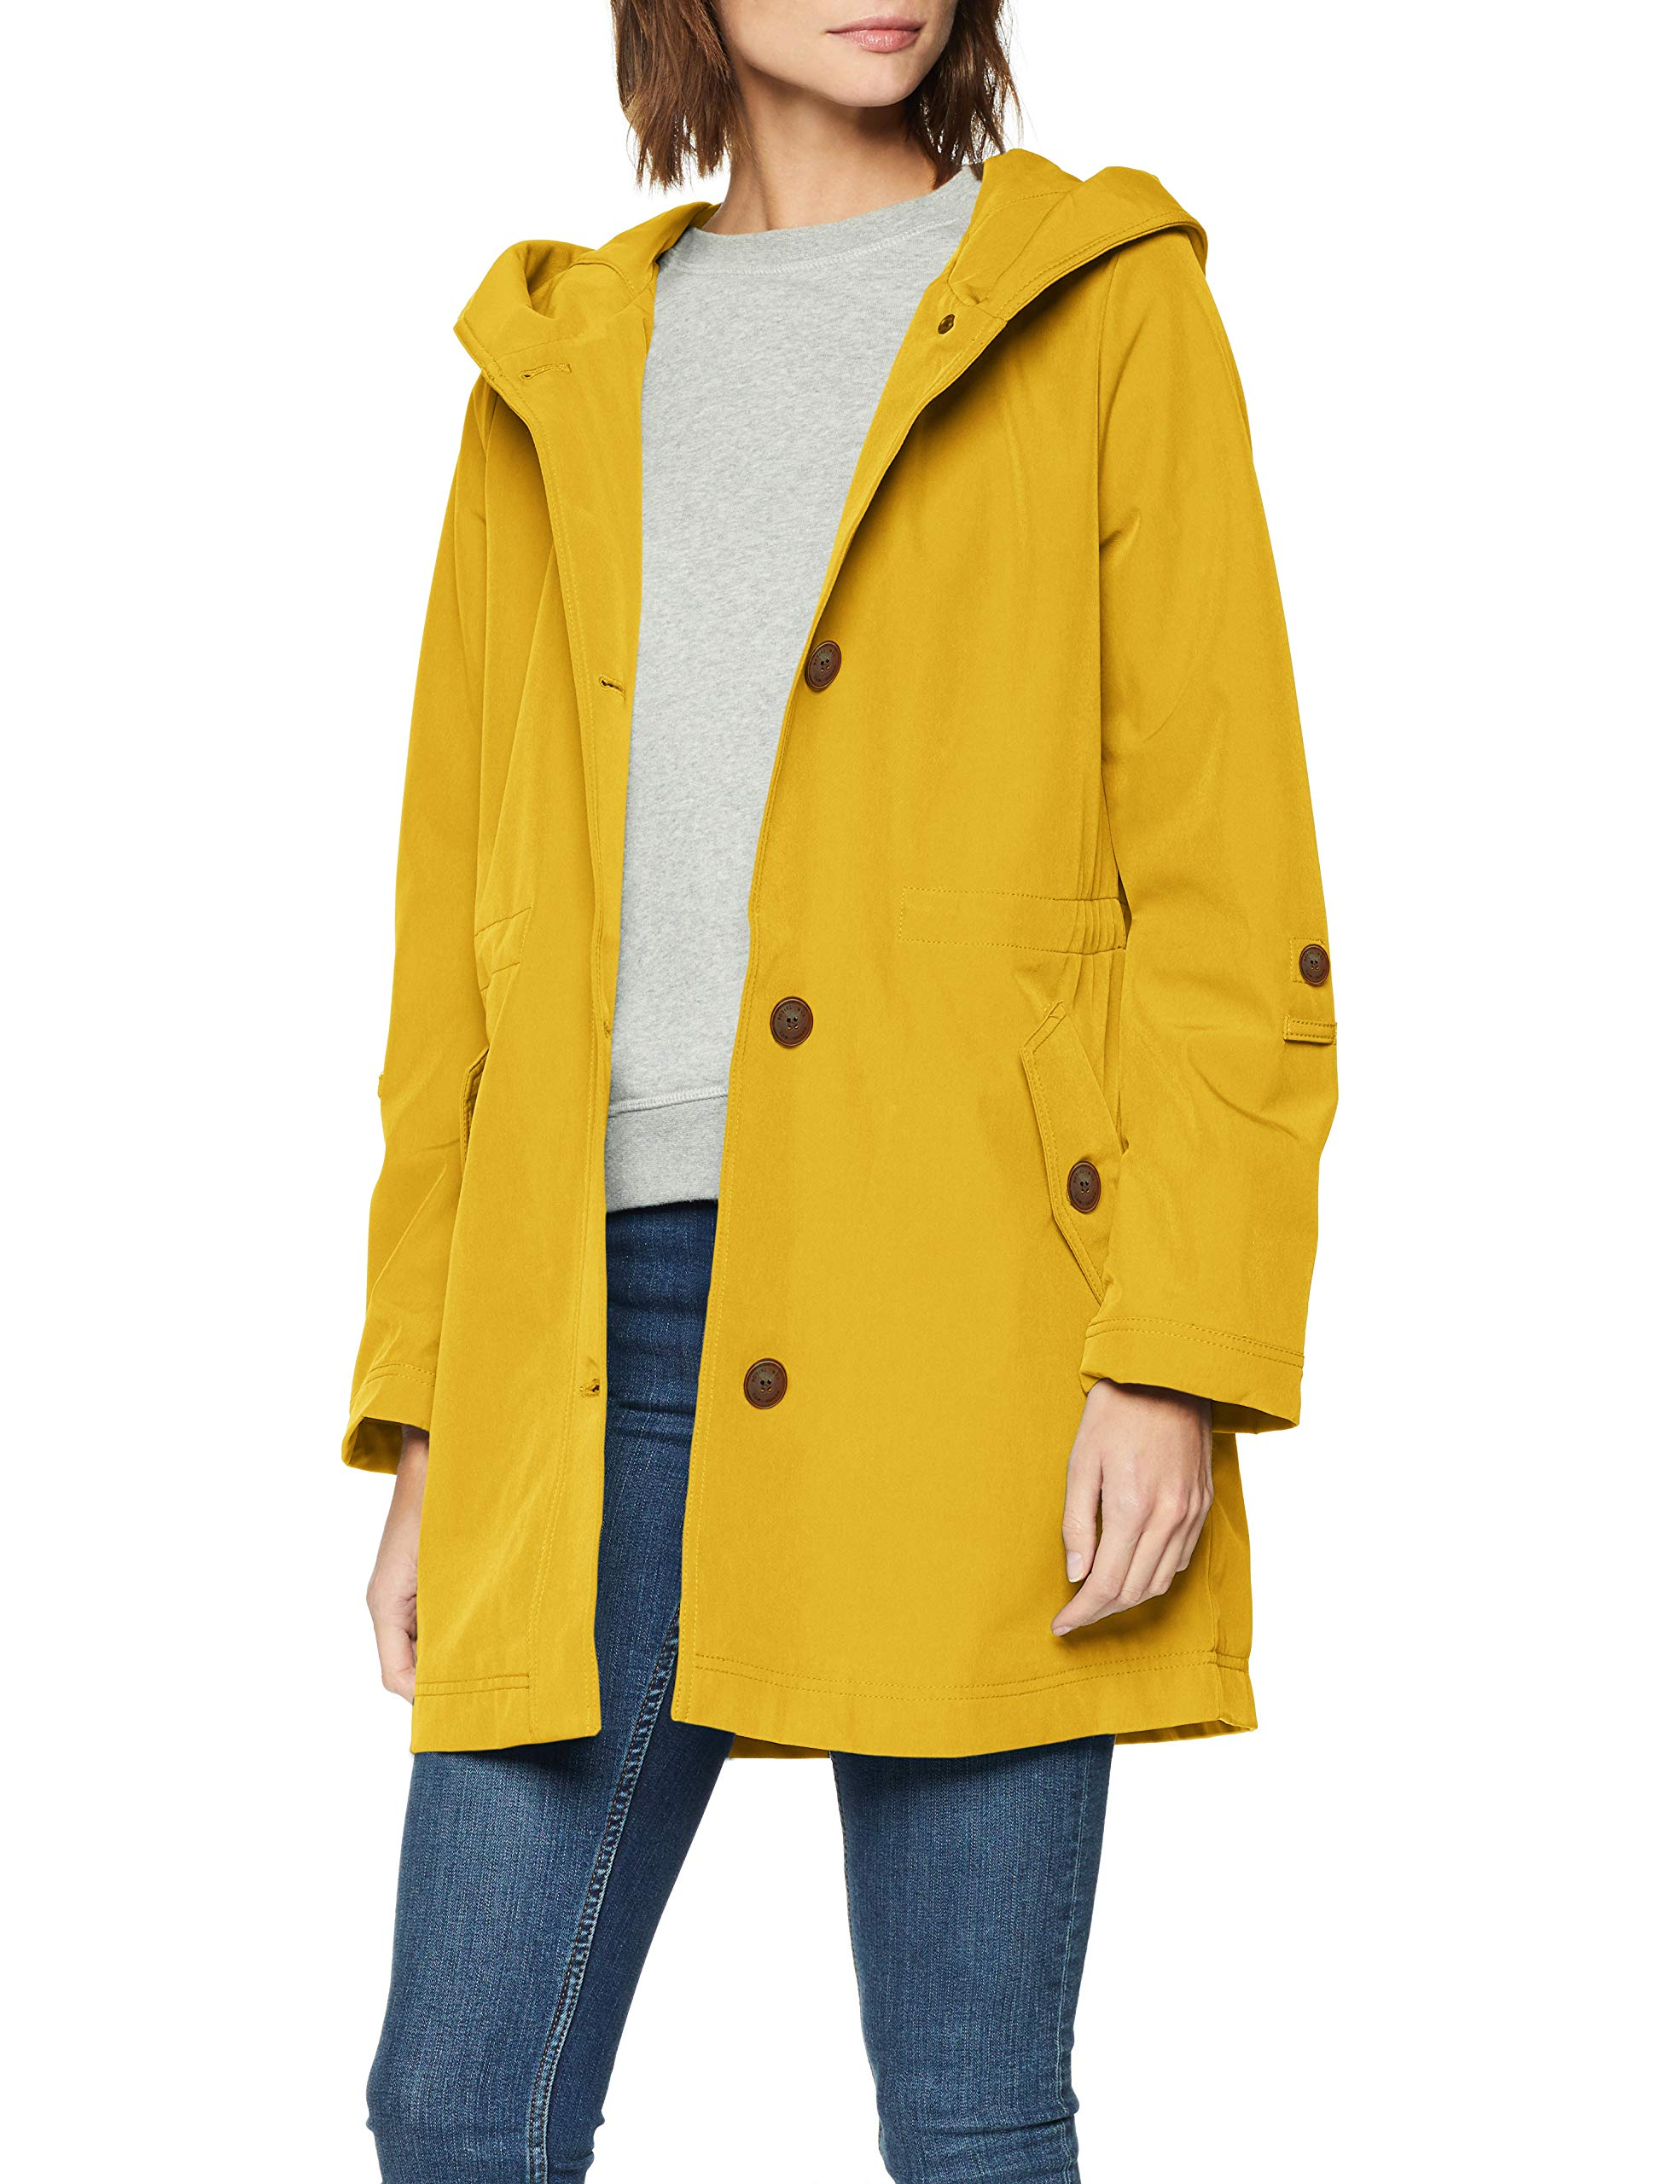 Sunflower Tailor Yell Tom 10382Large Femme Casual BlousonJaunemilky 1007971 qUMSzpV